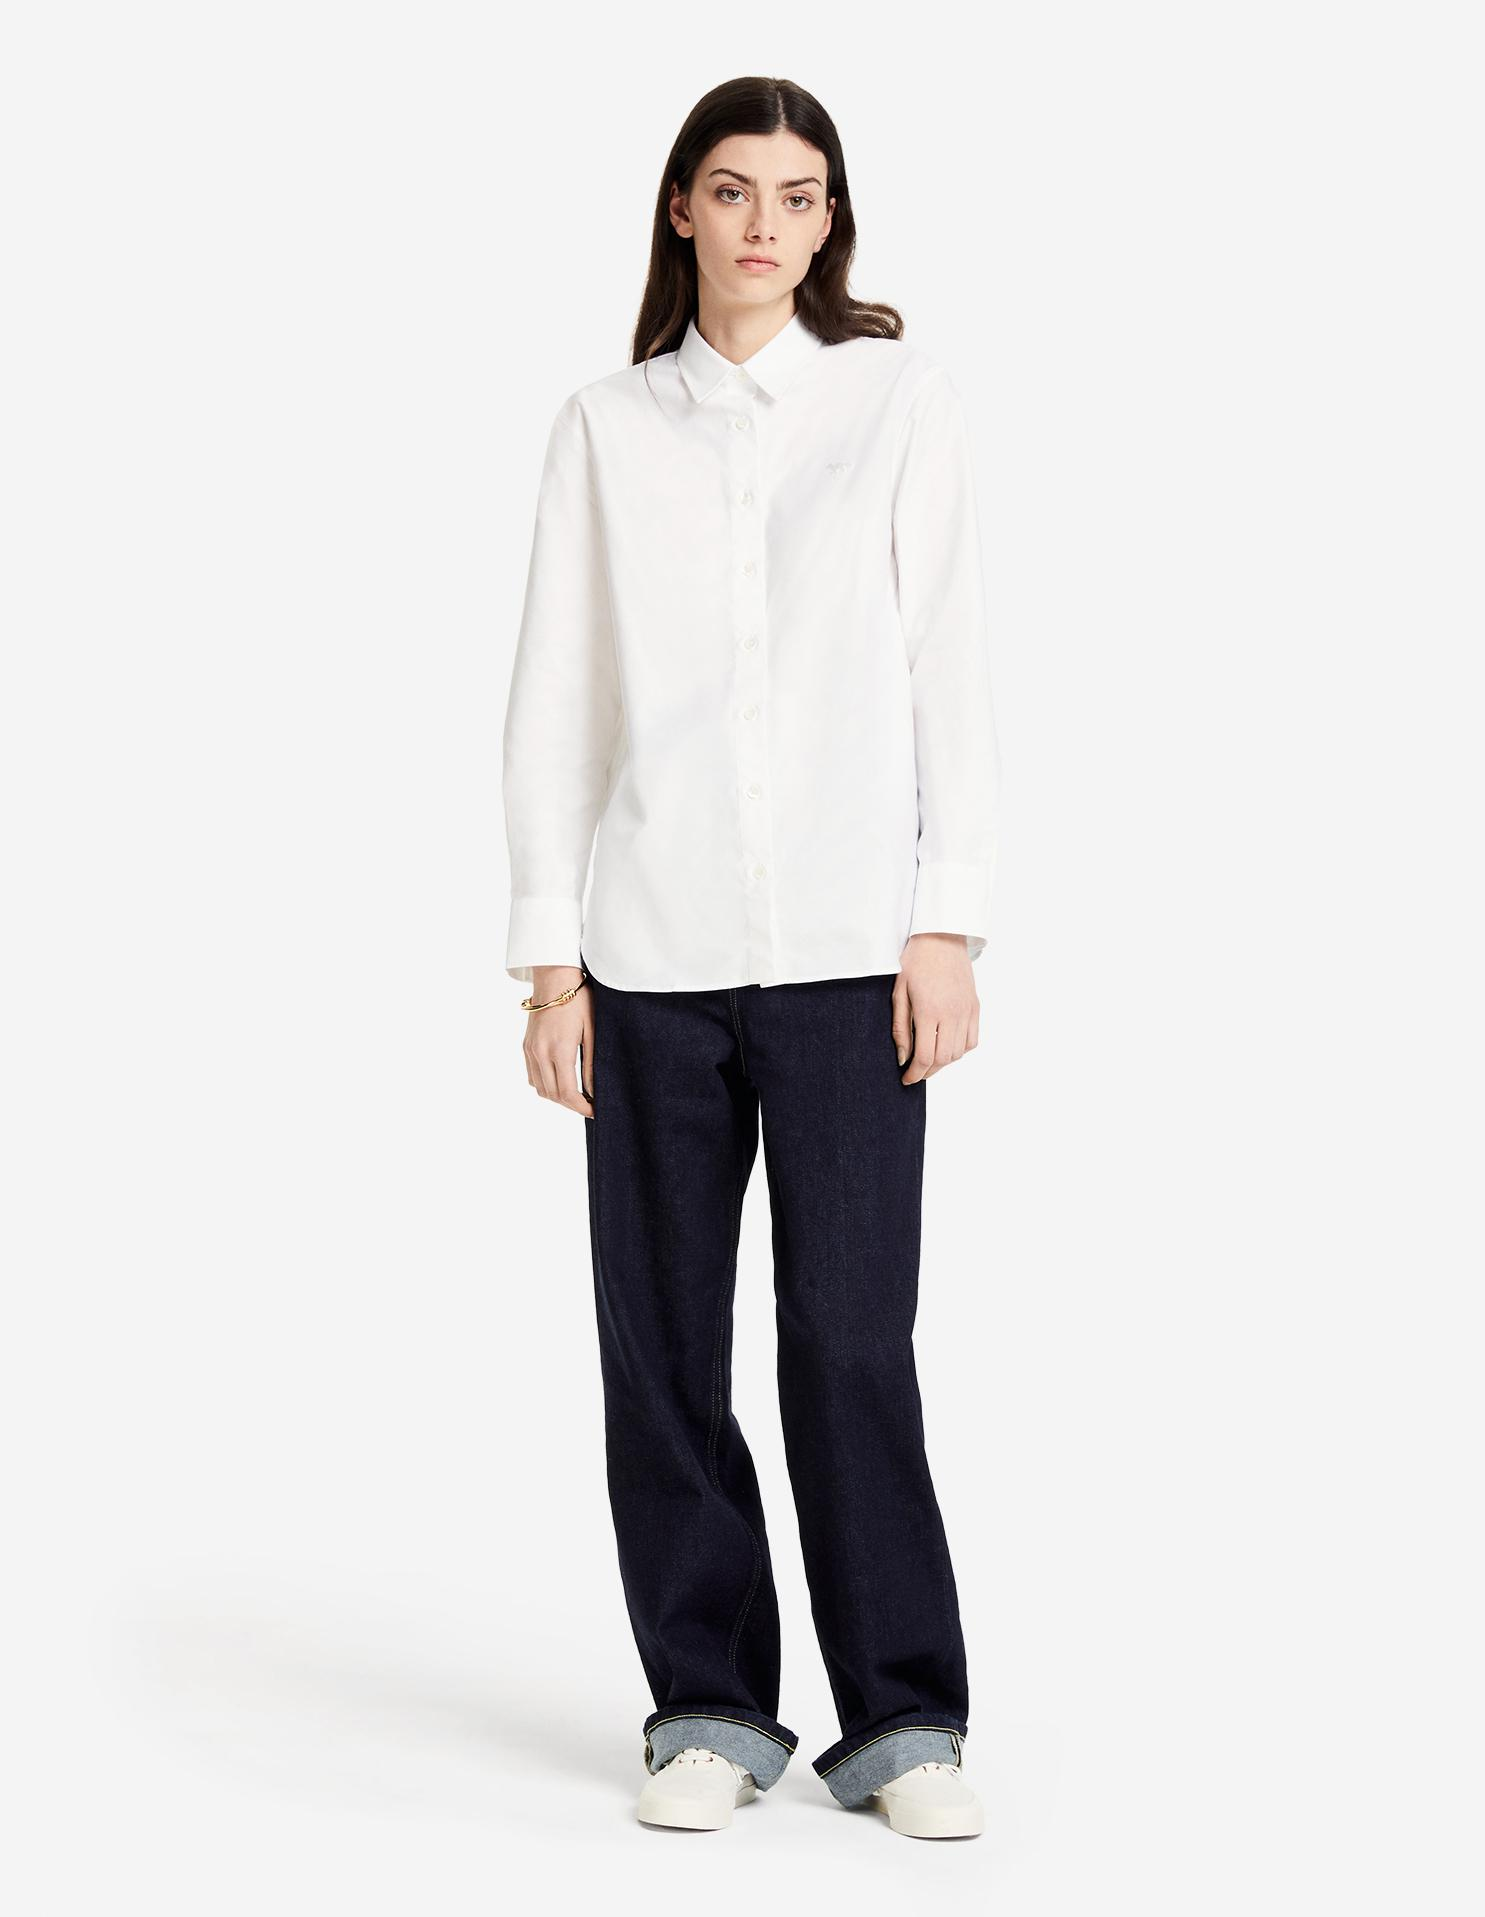 FOX EMBROIDERY CLASSIC SHIRT